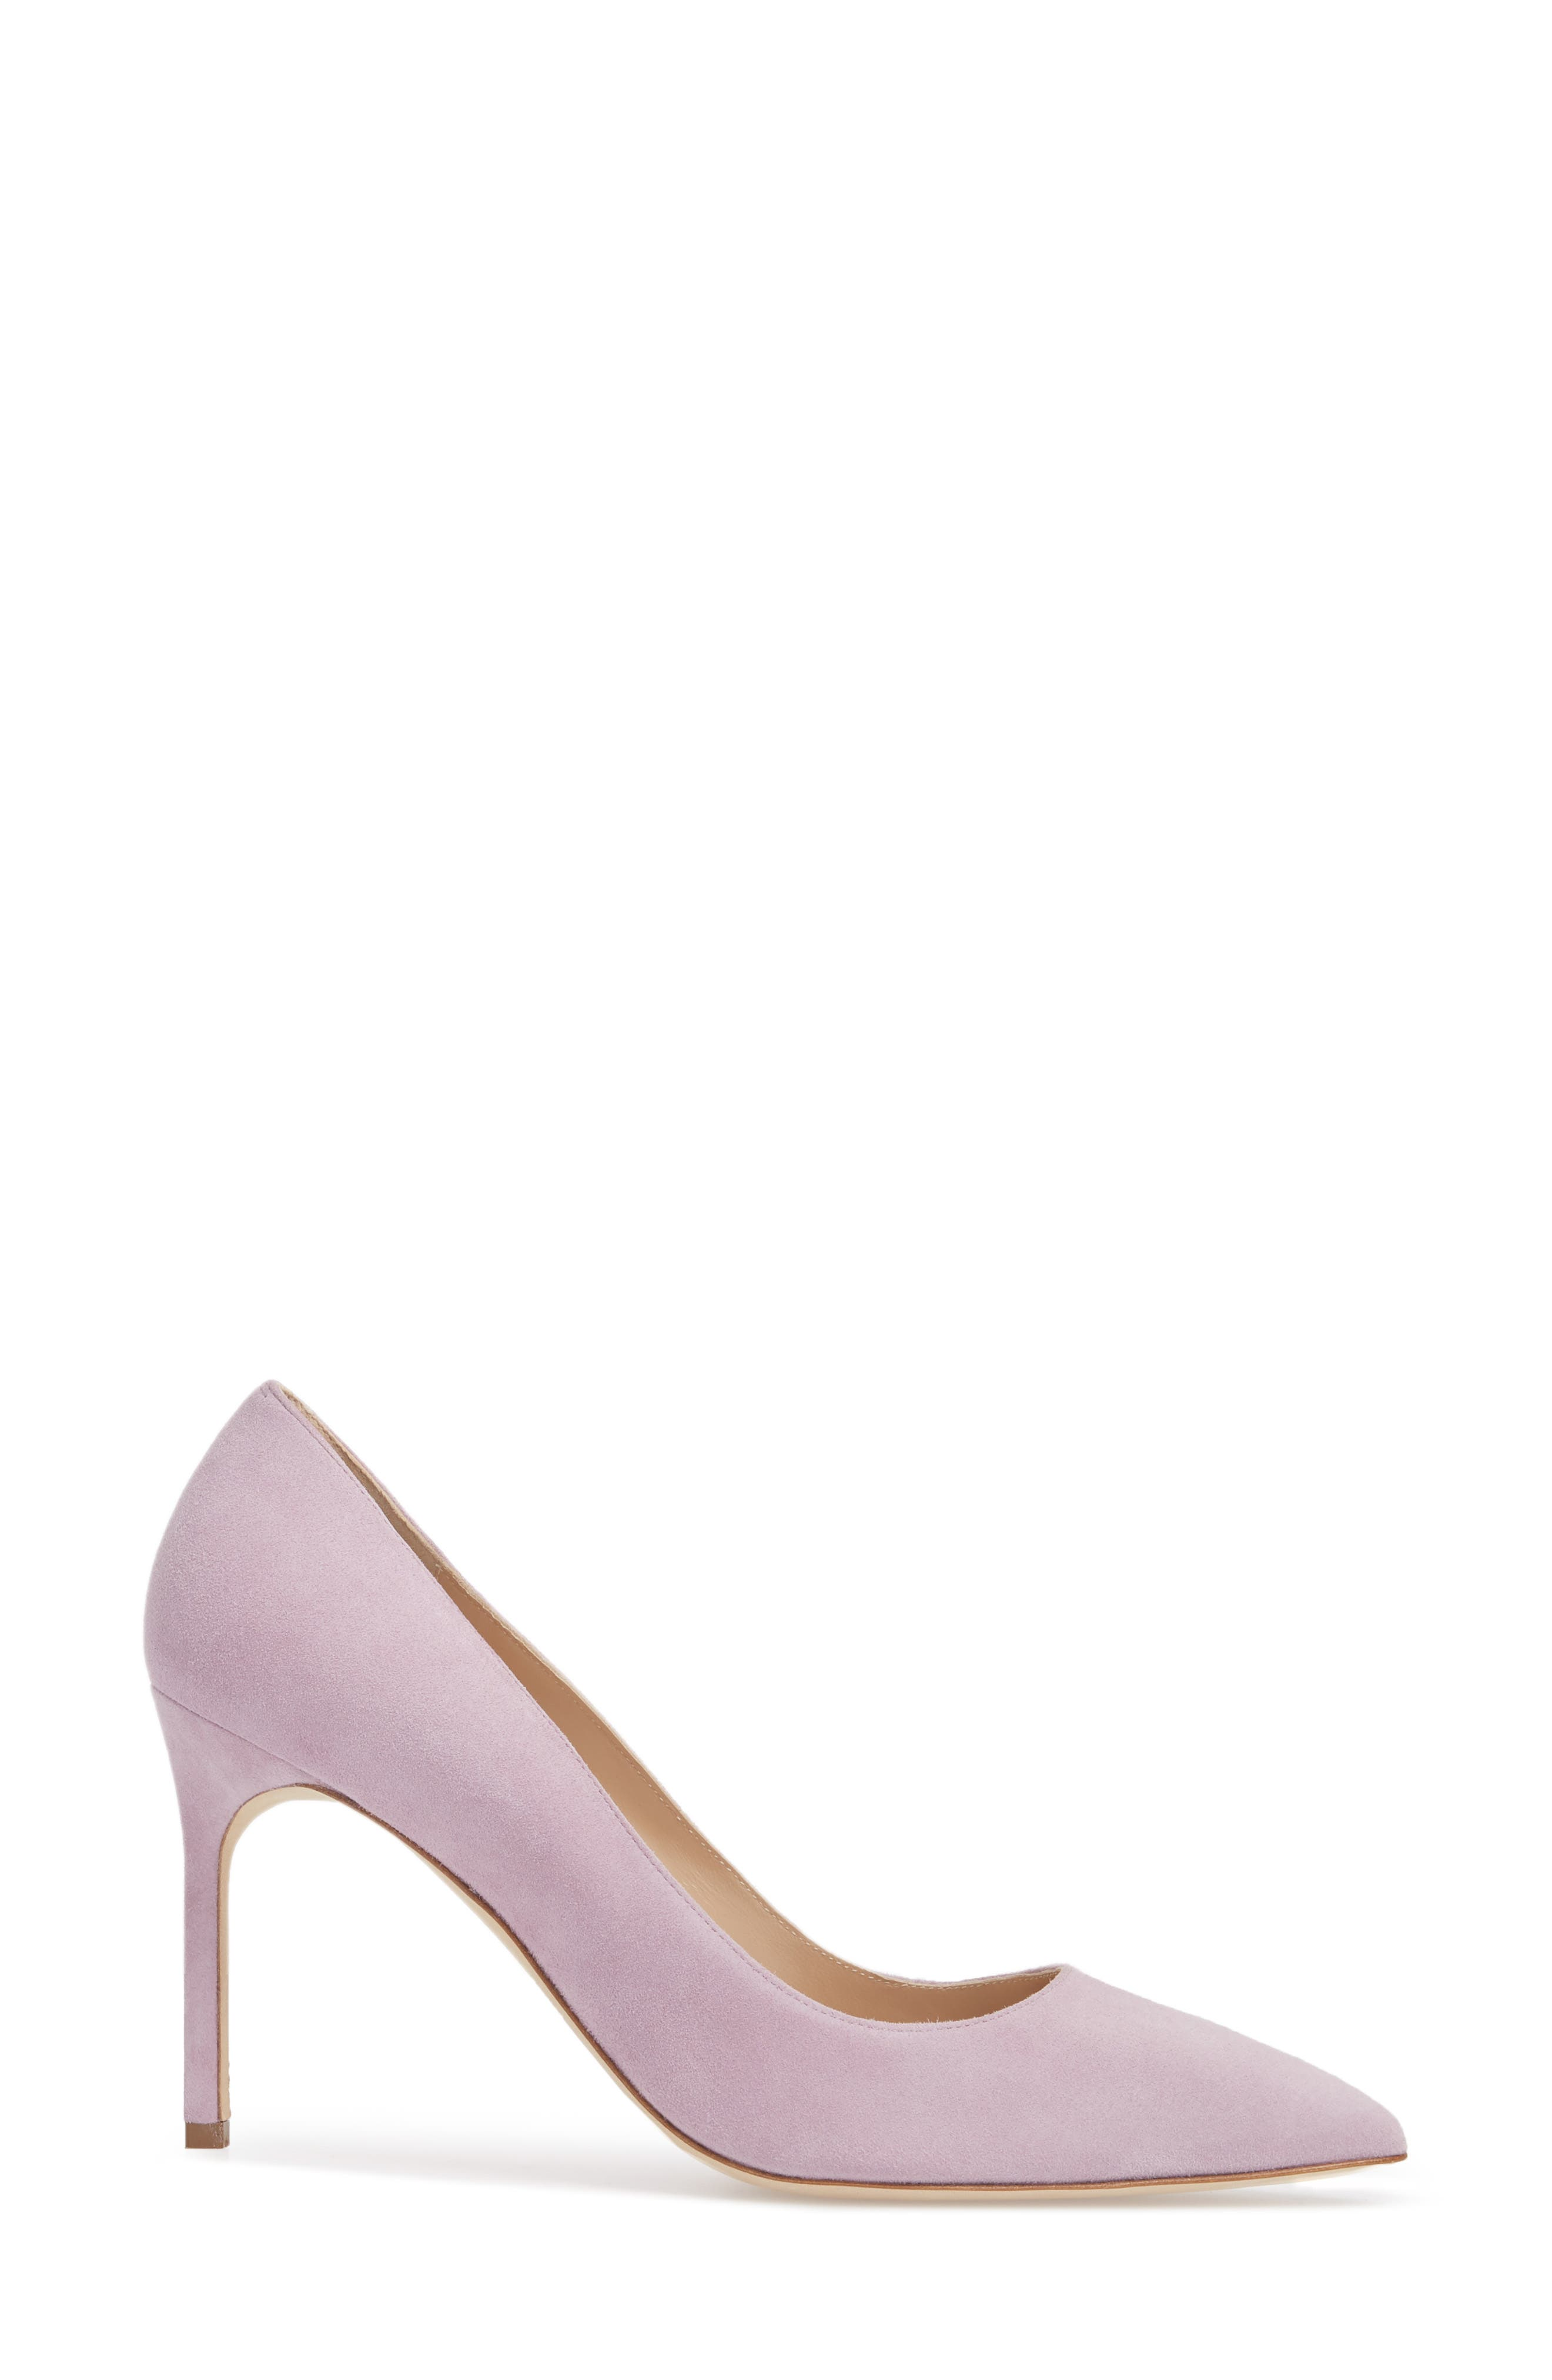 BB Pointy Toe Pump,                             Alternate thumbnail 3, color,                             Lavender Suede